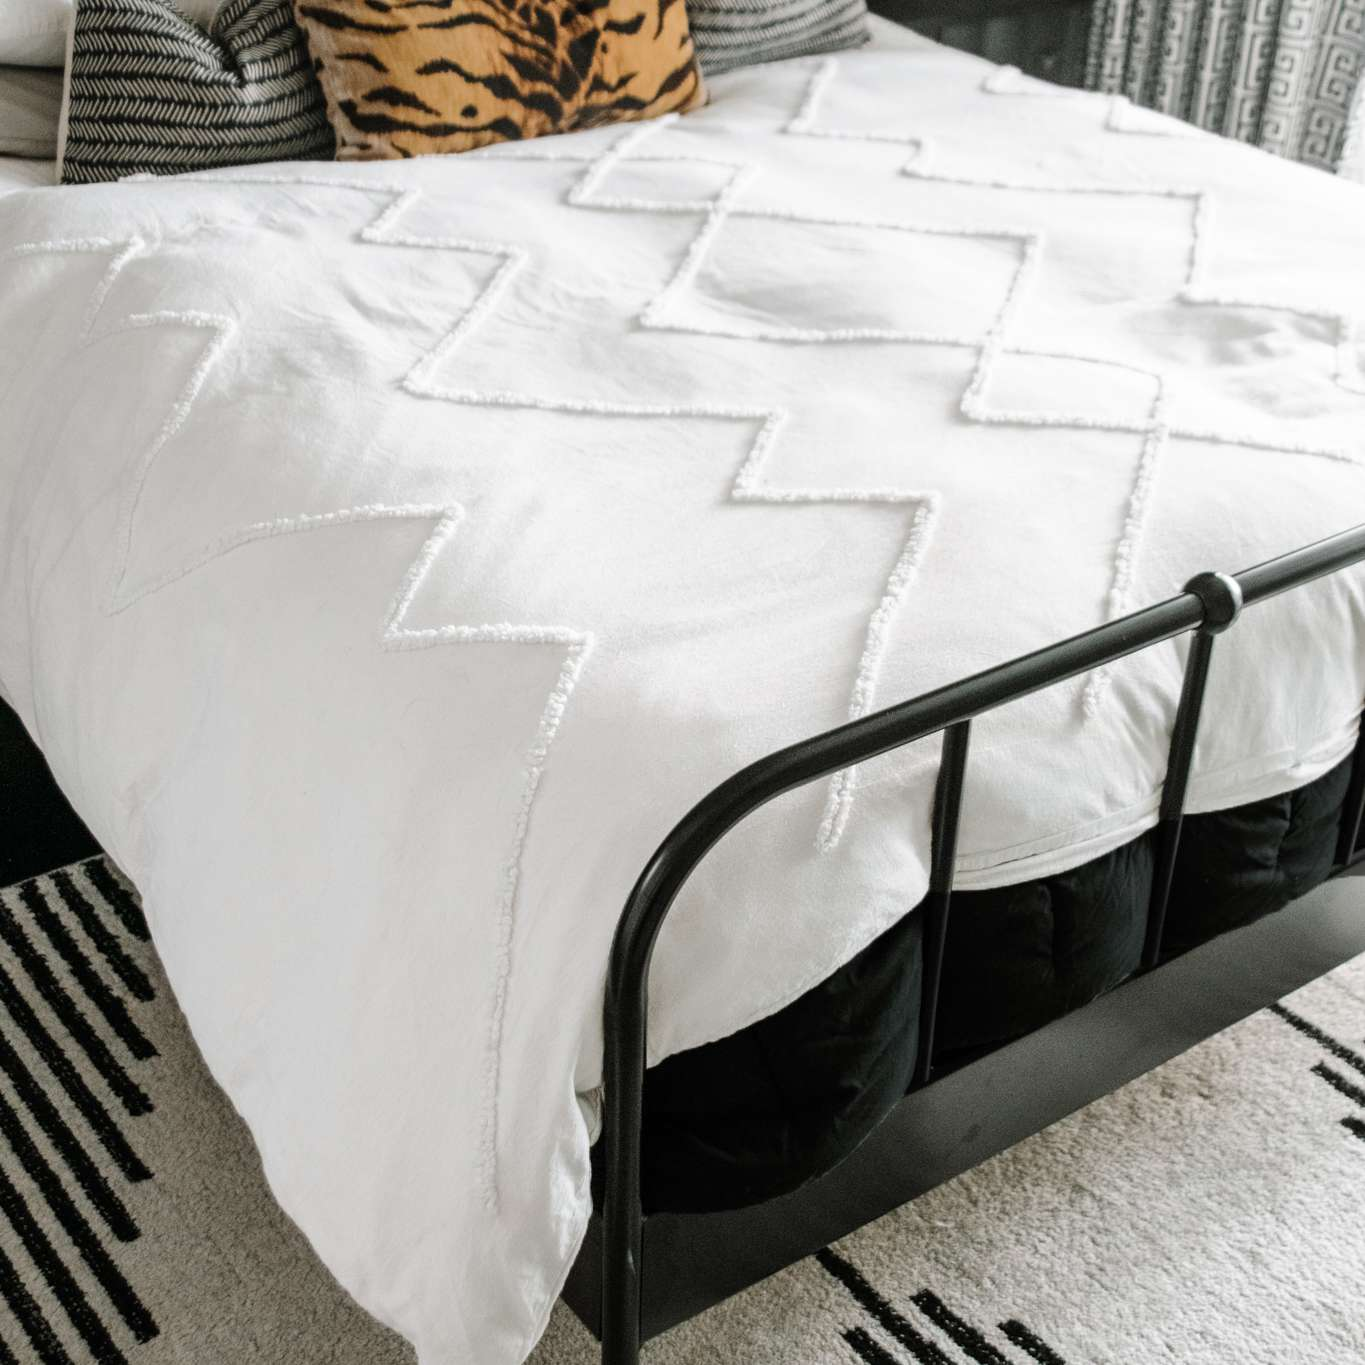 White comforter on bed.